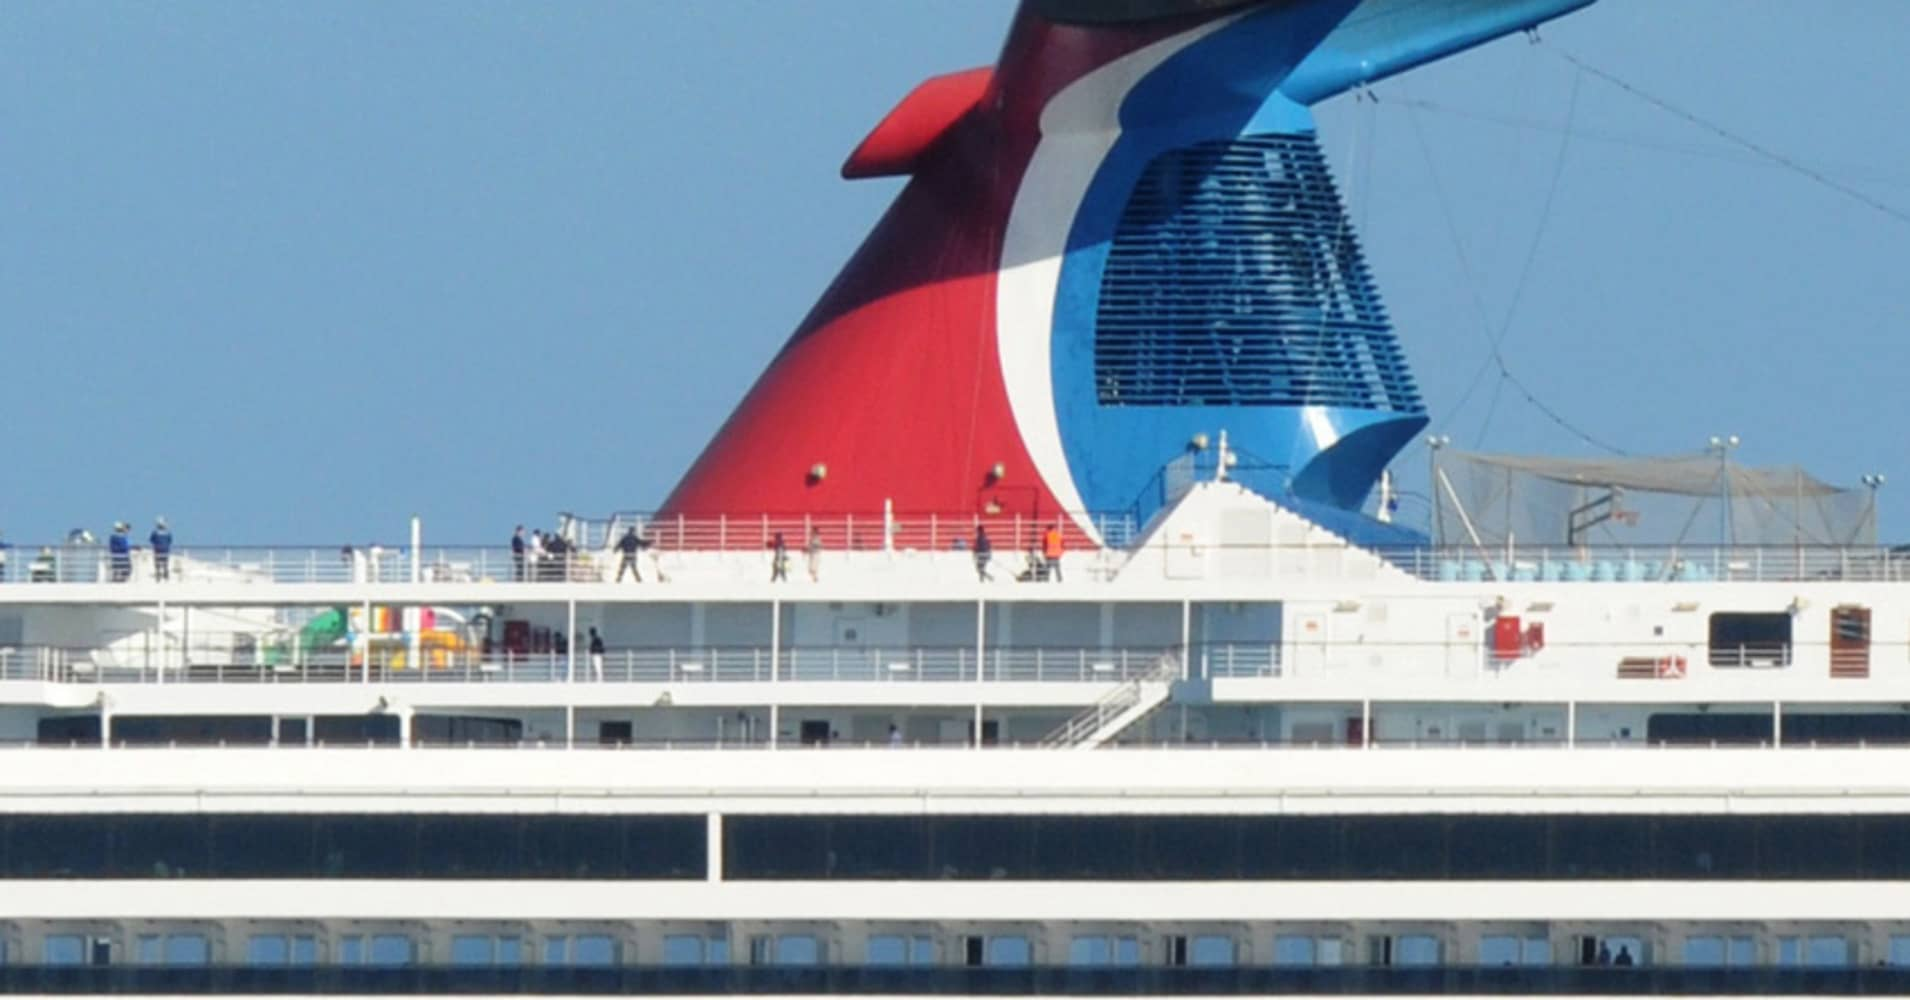 carnival cruise analysis The global cruise industry is one of the few industries in the on midmarket suppliers including carnival analysis of the cruise line industry.